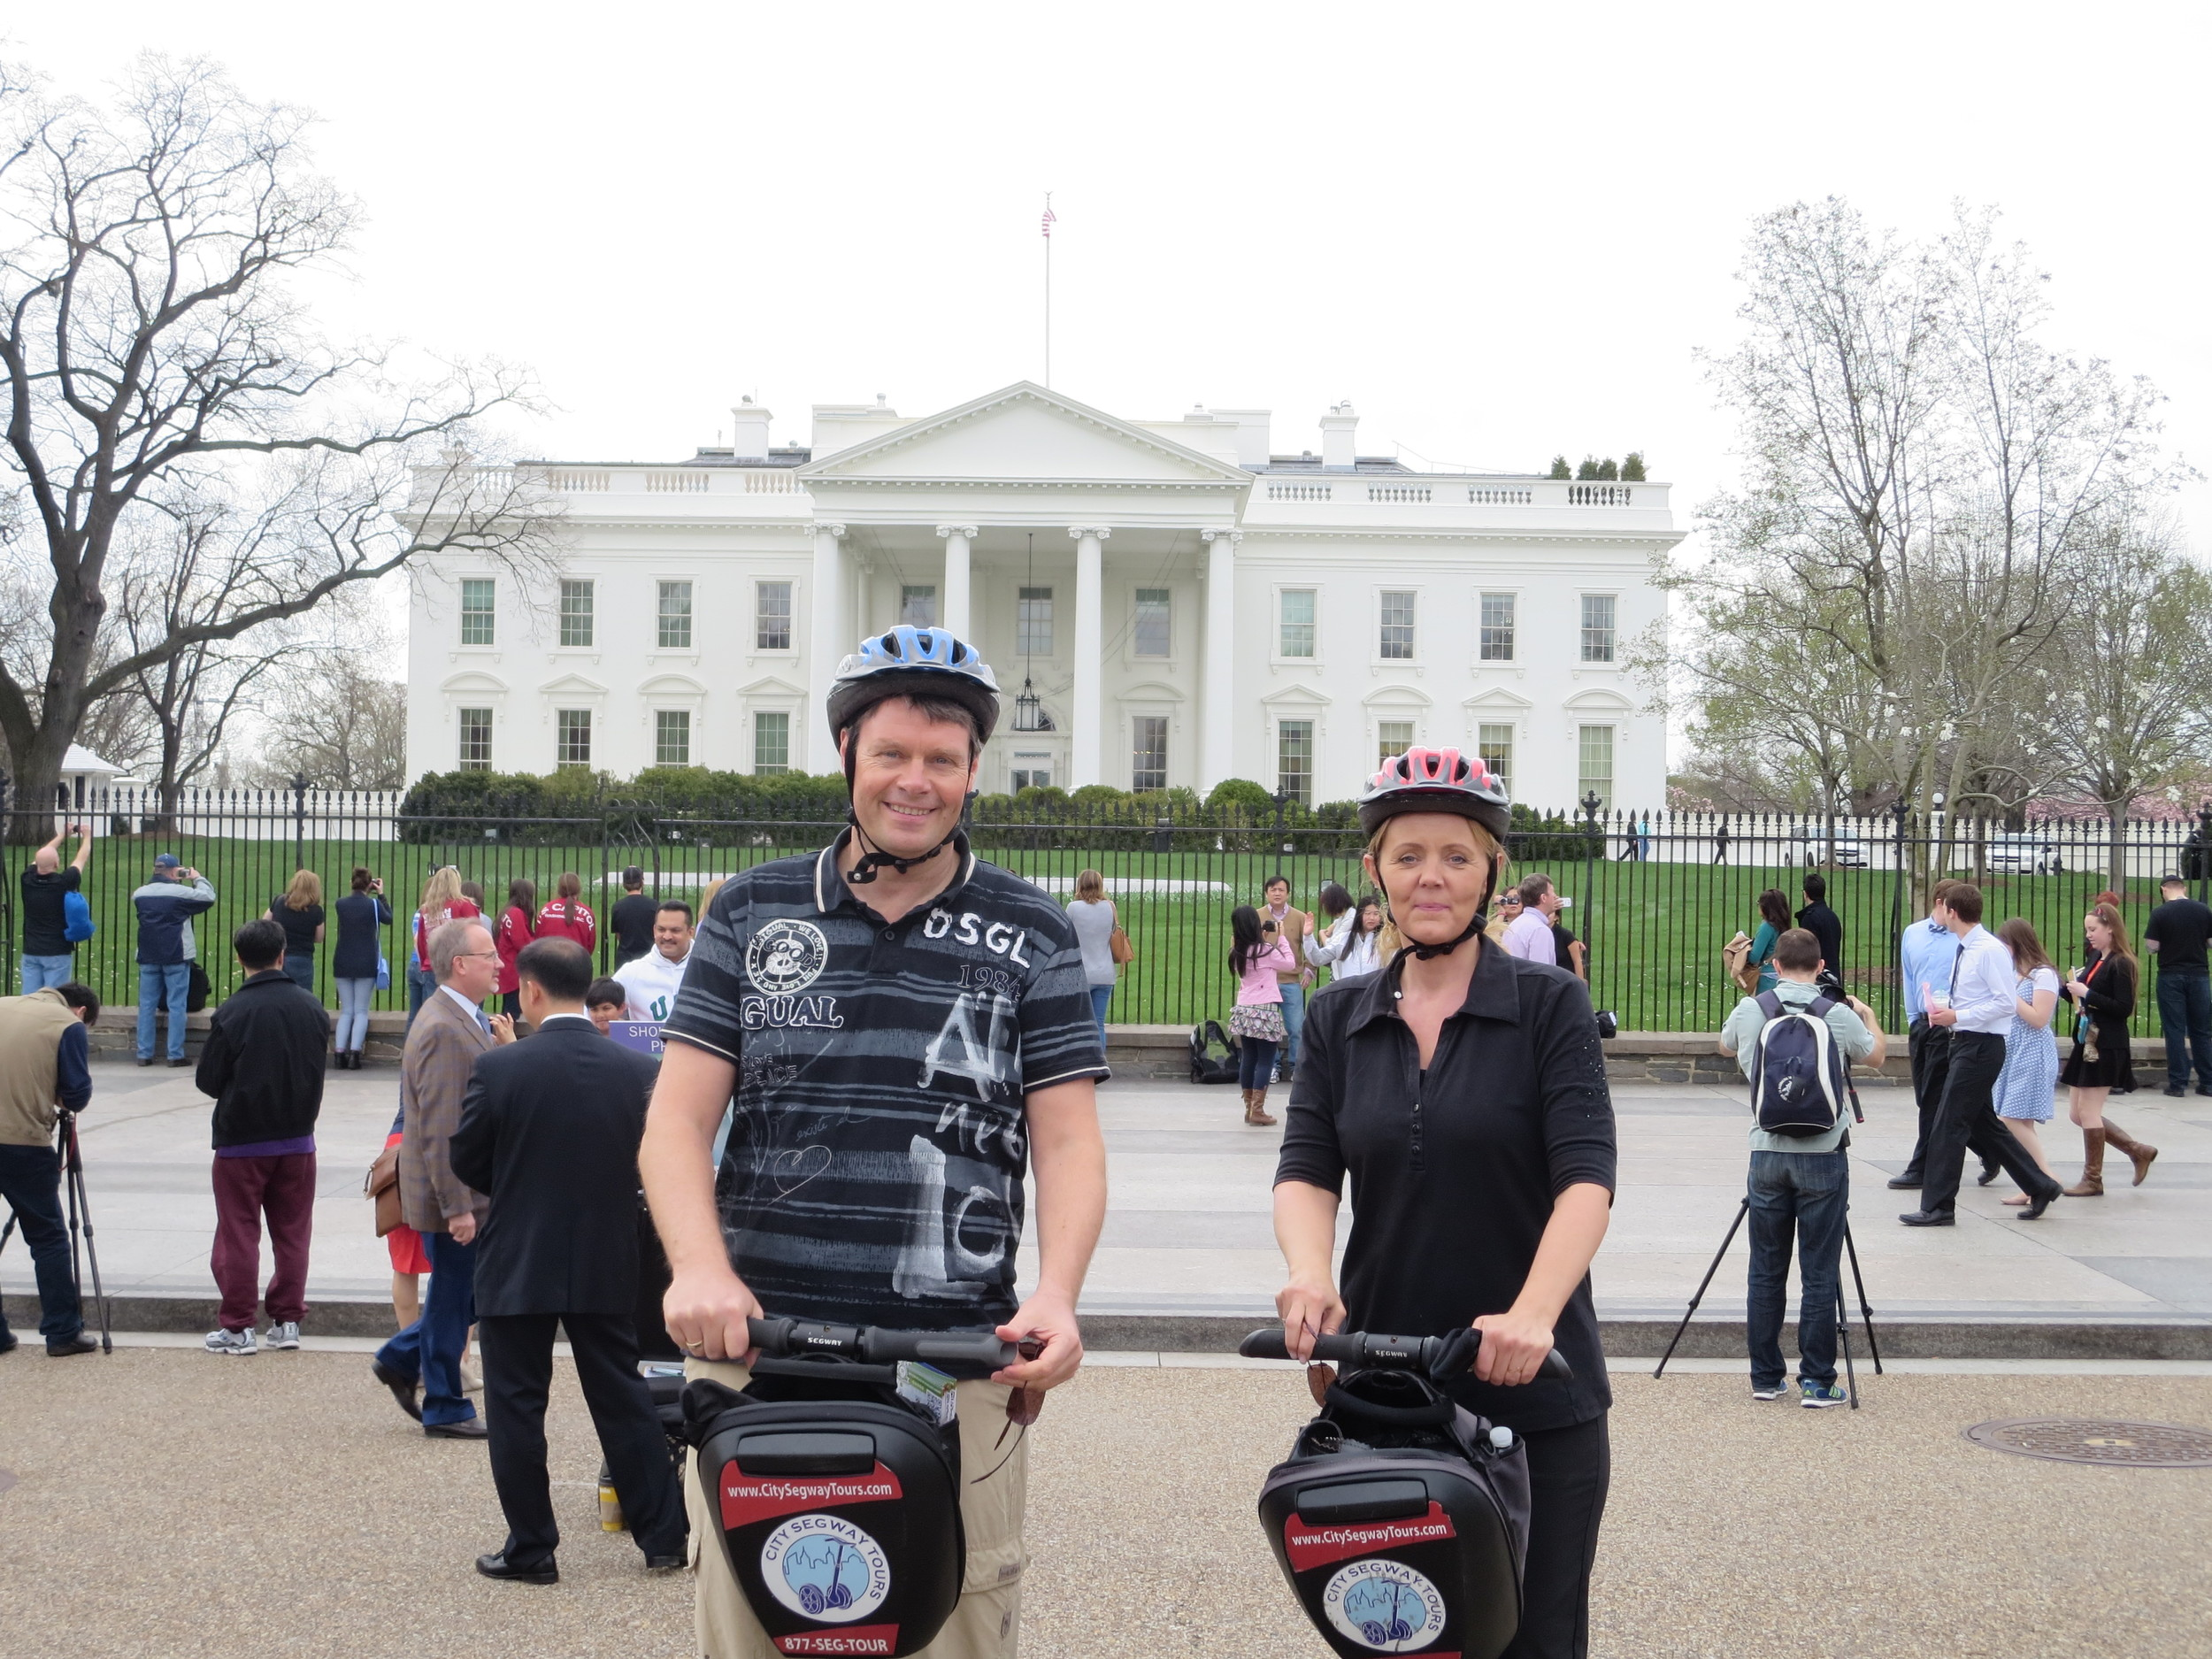 On Segways in front of The White House